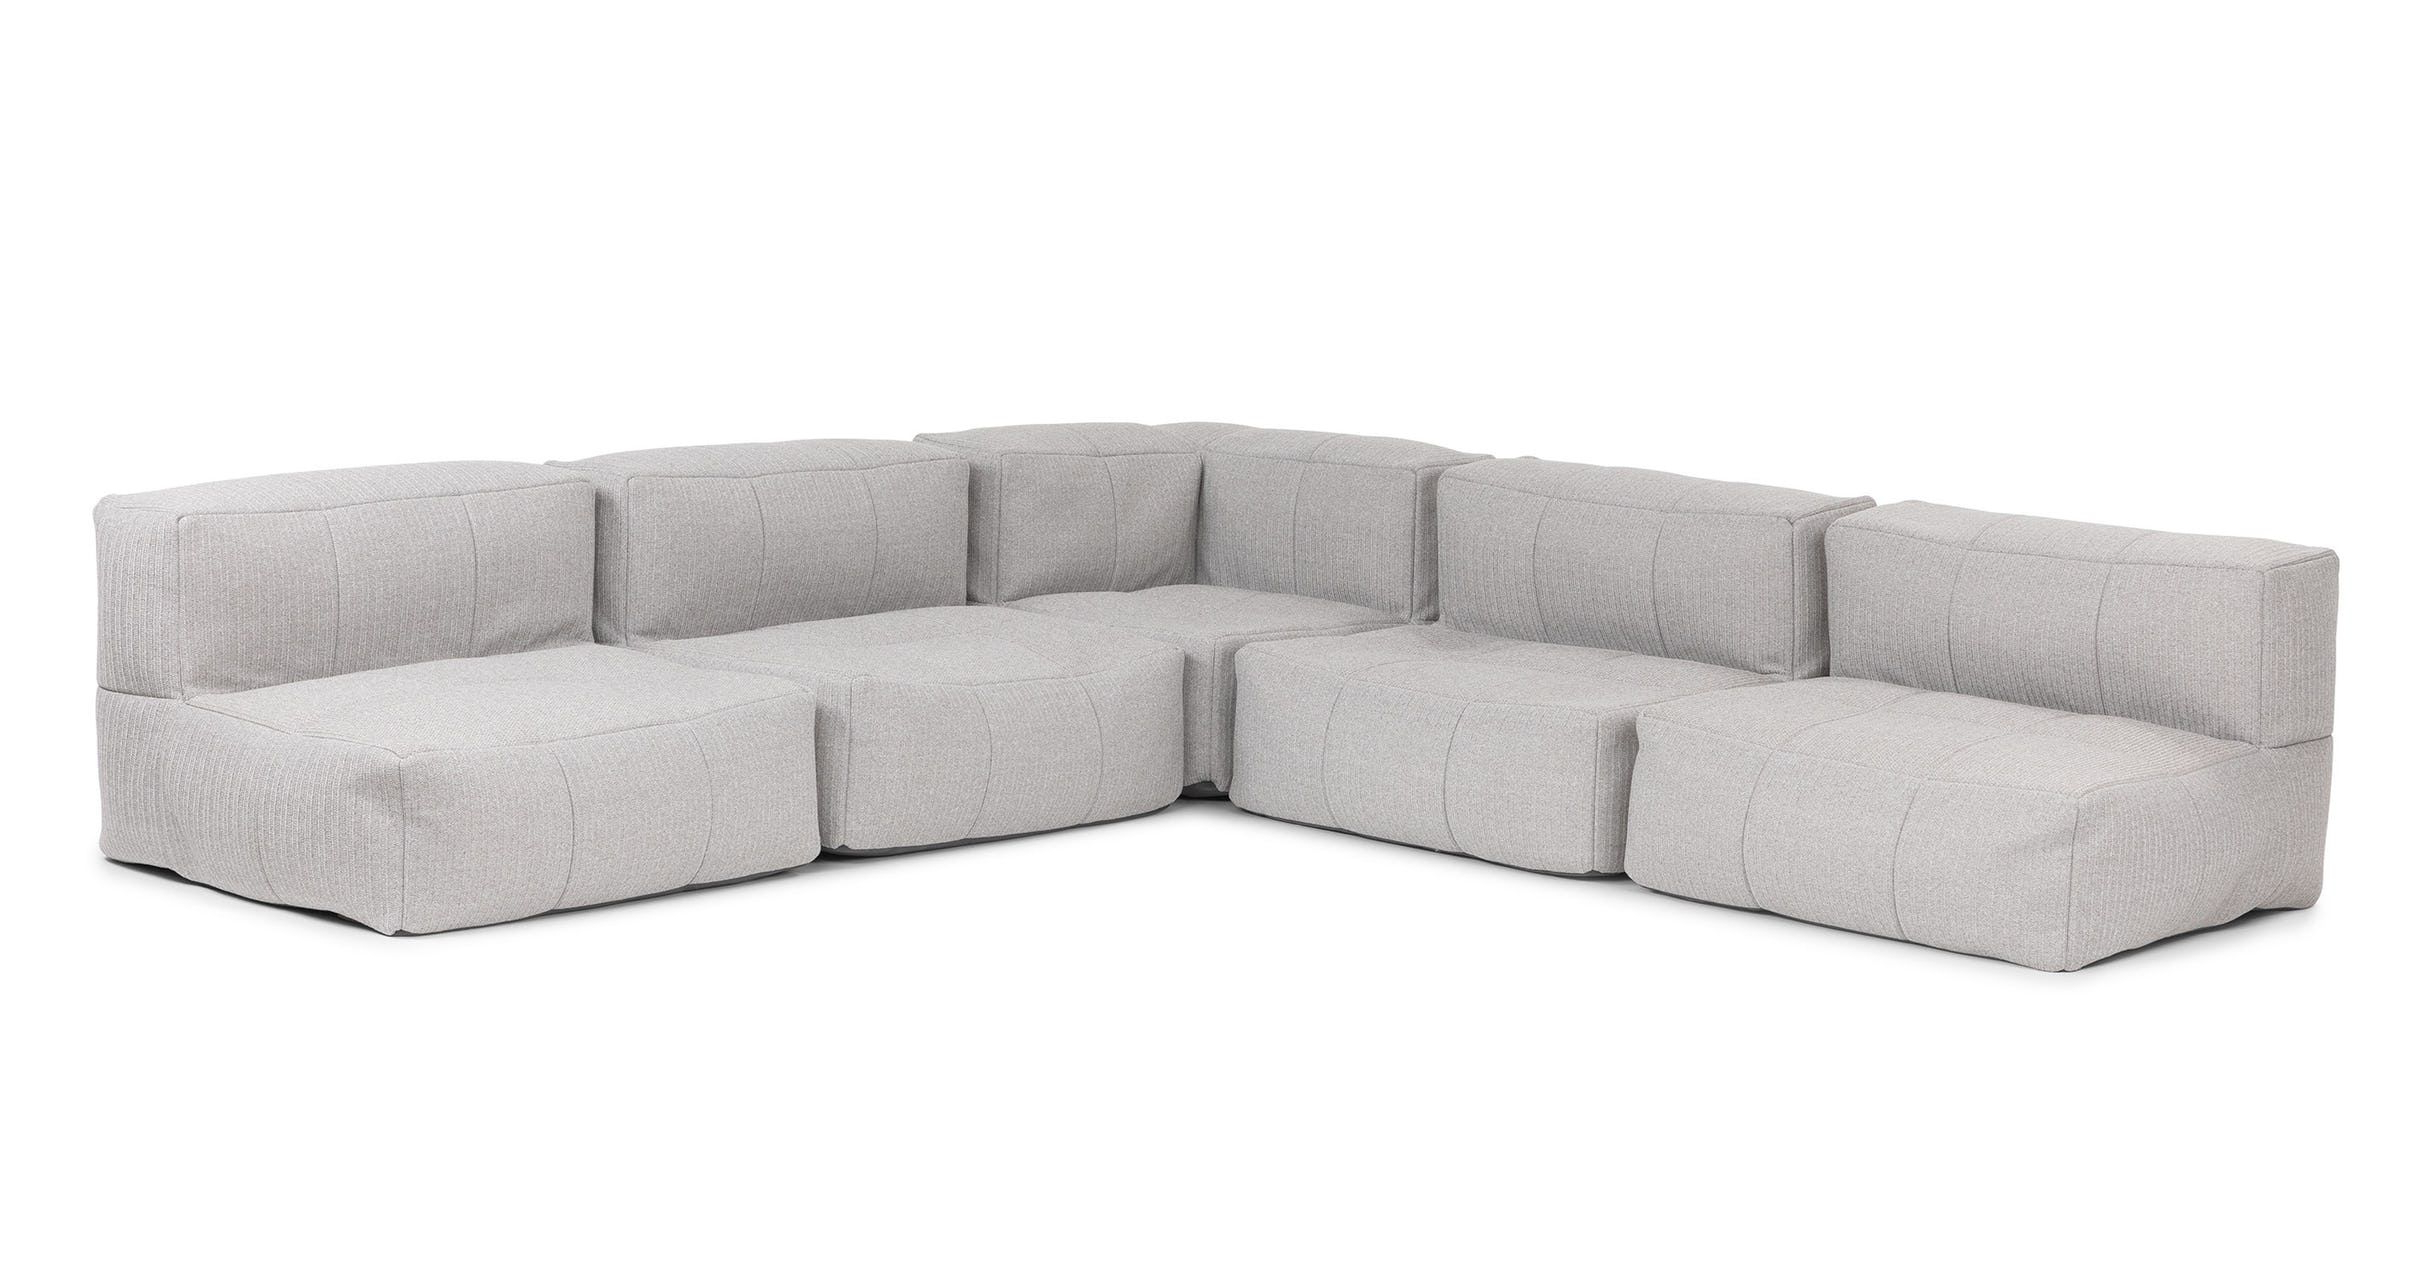 Article Gios Modern Pertaining To Baca Patio Sofas With Cushions (View 3 of 25)